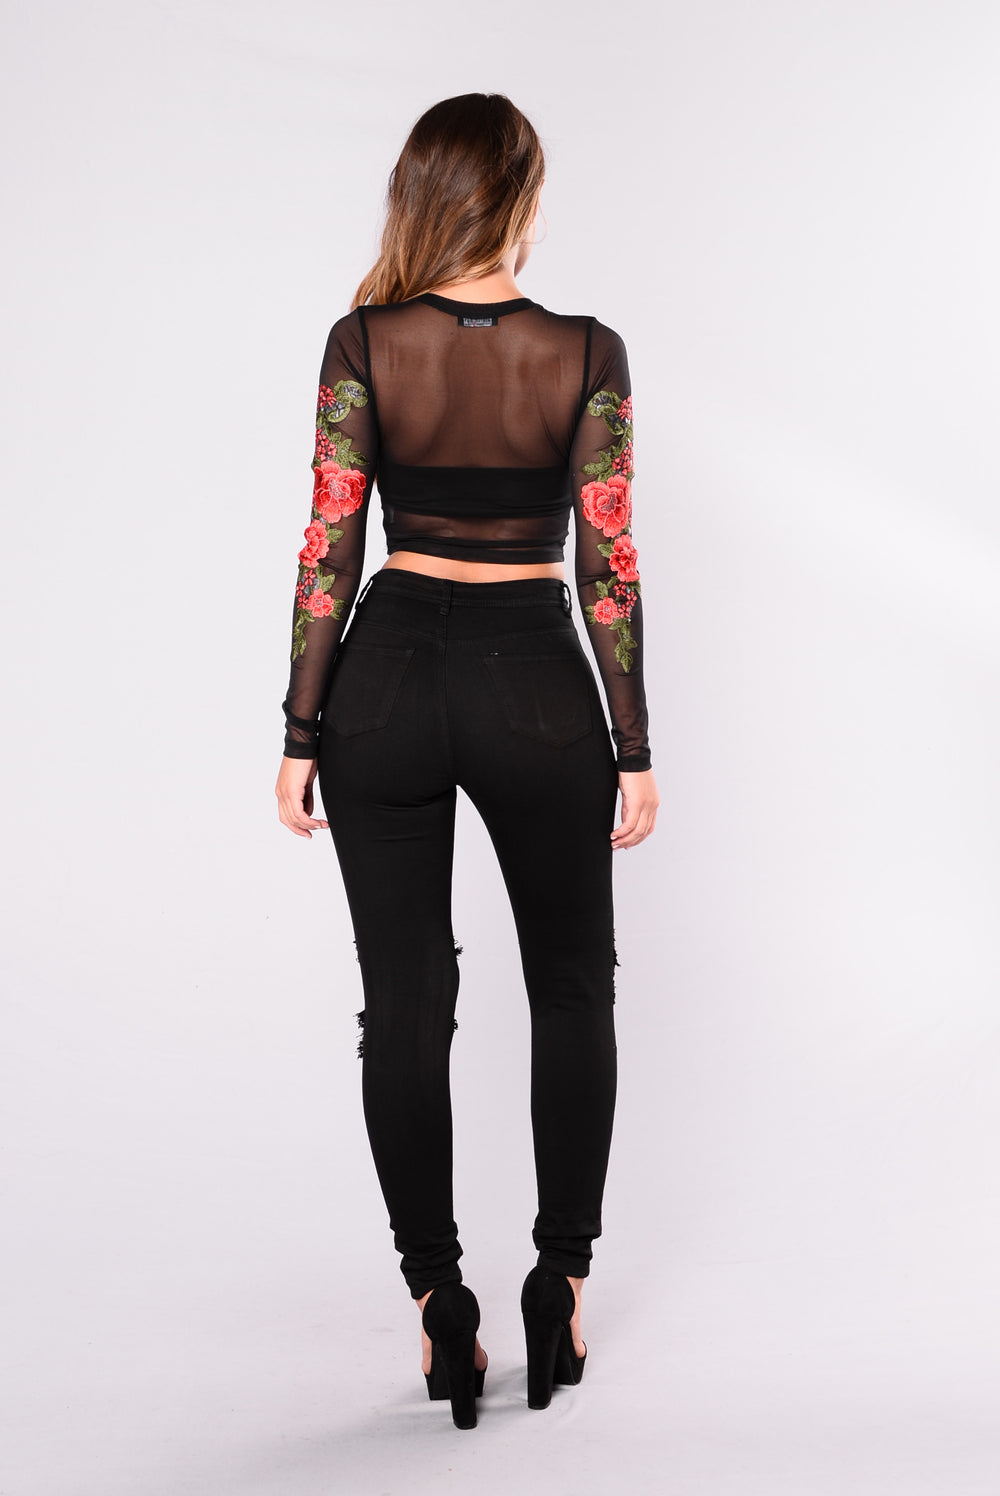 Catch The Patch Top - Black